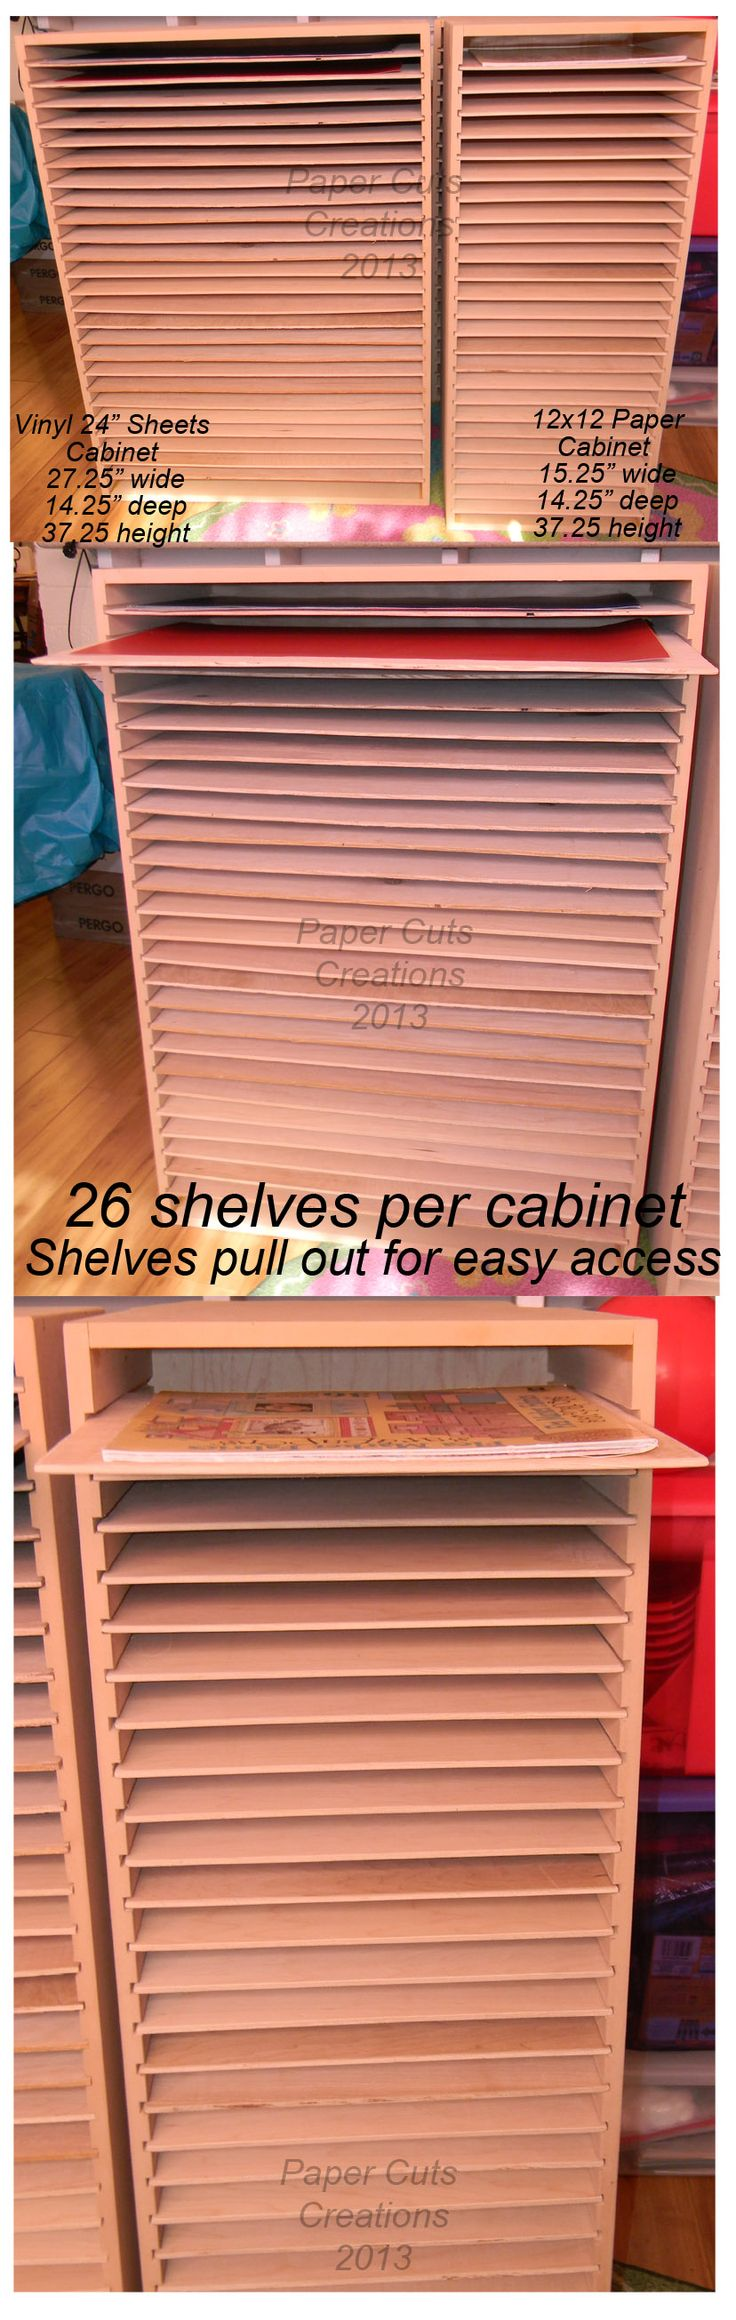 "UNFINISHED CRAFT ROOM CABINETS.   Stores 12x12 paper and  24"" x 12"" adhesive vinyl sheets.  Vinyl Cabinet is:  27.25"" wide x 14.25"" deep by 37.25 high  -  Paper Cabinet is:  15.25"" wide by 14.25"" deep by 37.25 high    Shelves easily slide out for easy access. Each cabinet has 26 shelves. You can paint to match your room. Custom made with maple shelving."